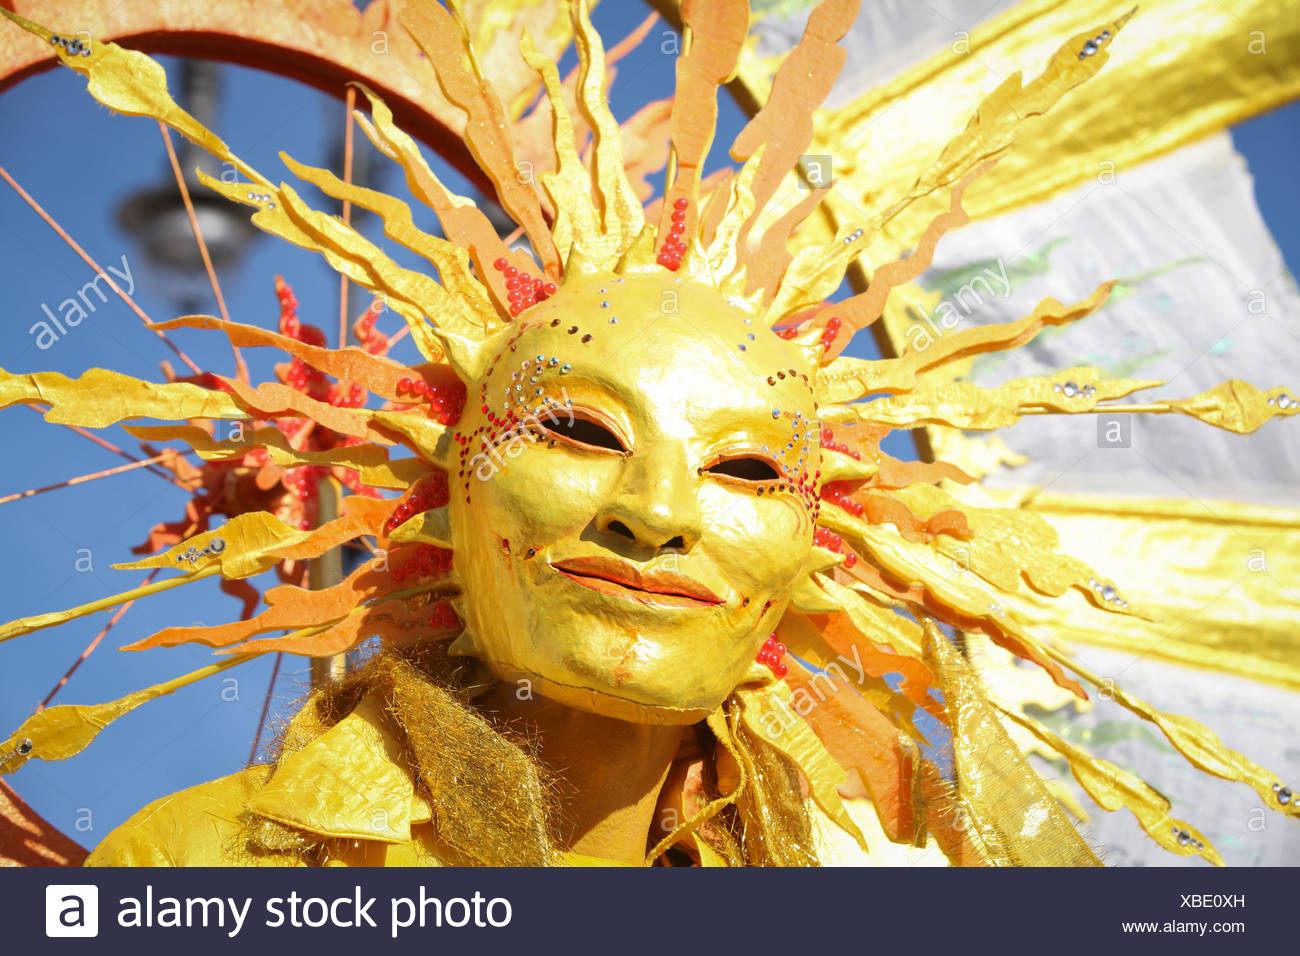 Sun mask, mass rally against drastic cuts in state funding for solar power, Berlin - Stock Image